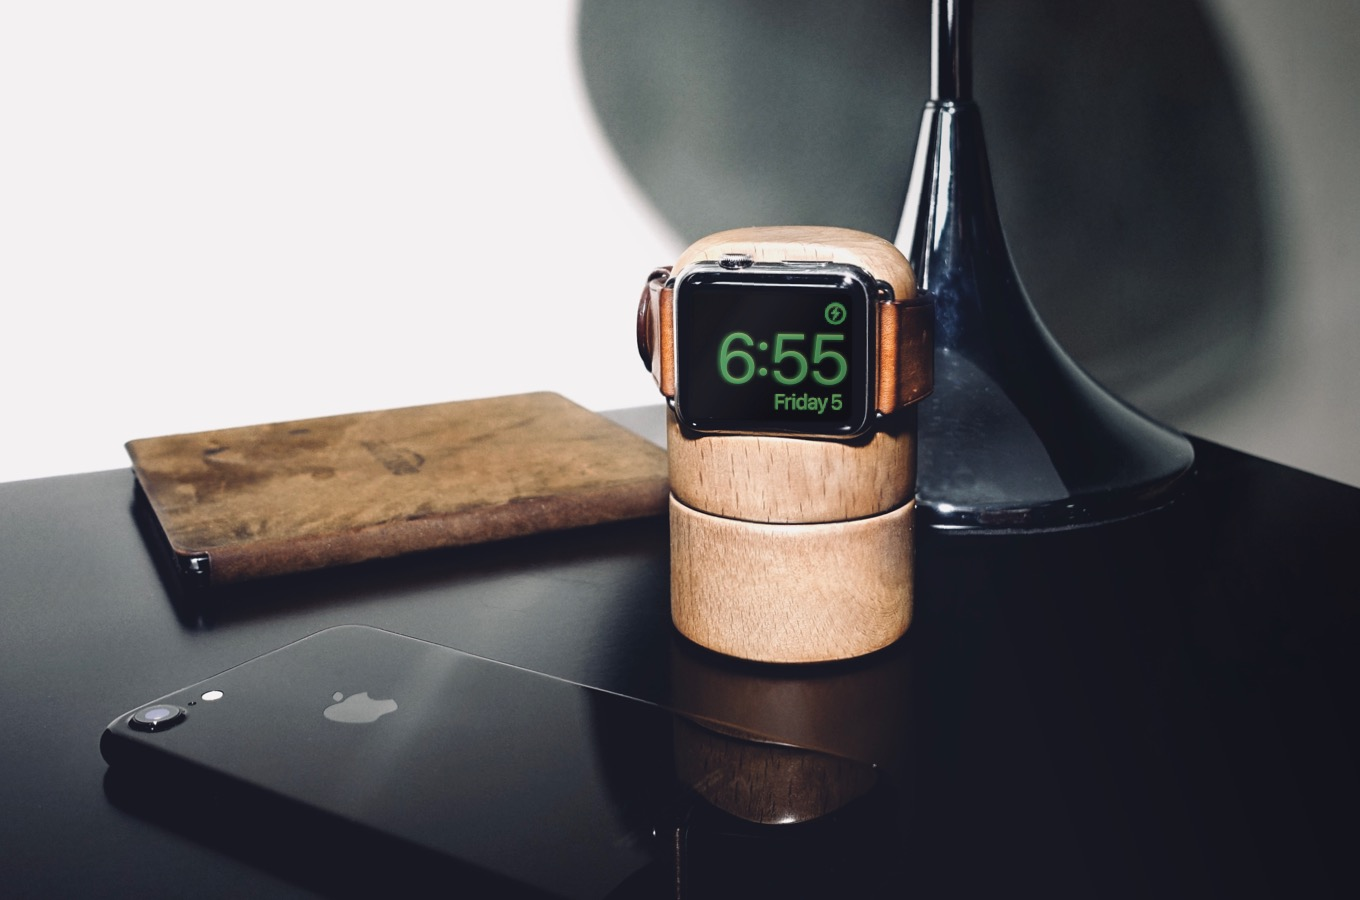 Totm+Travl Apple Watch Stand Is Unique and Feature-Packed